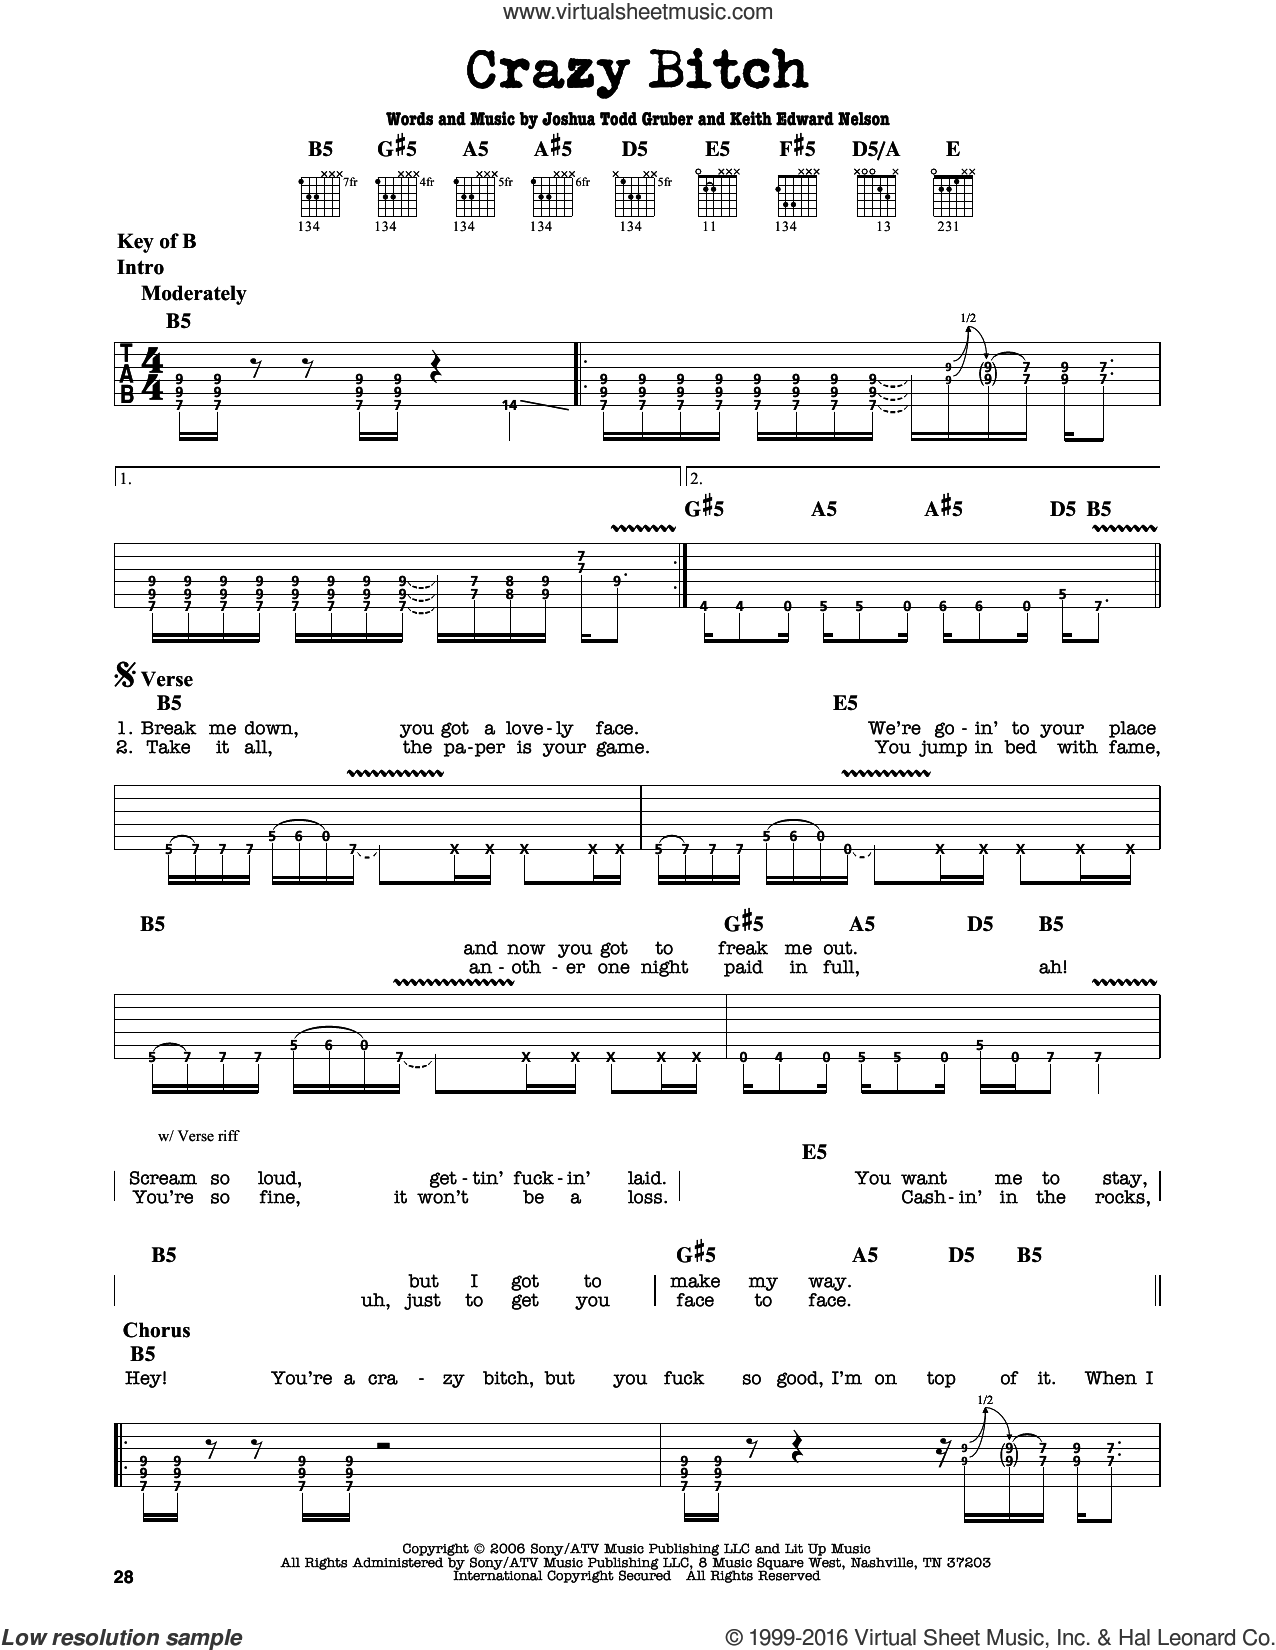 Crazy Bitch sheet music for guitar solo (lead sheet) by Keith Edward Nelson